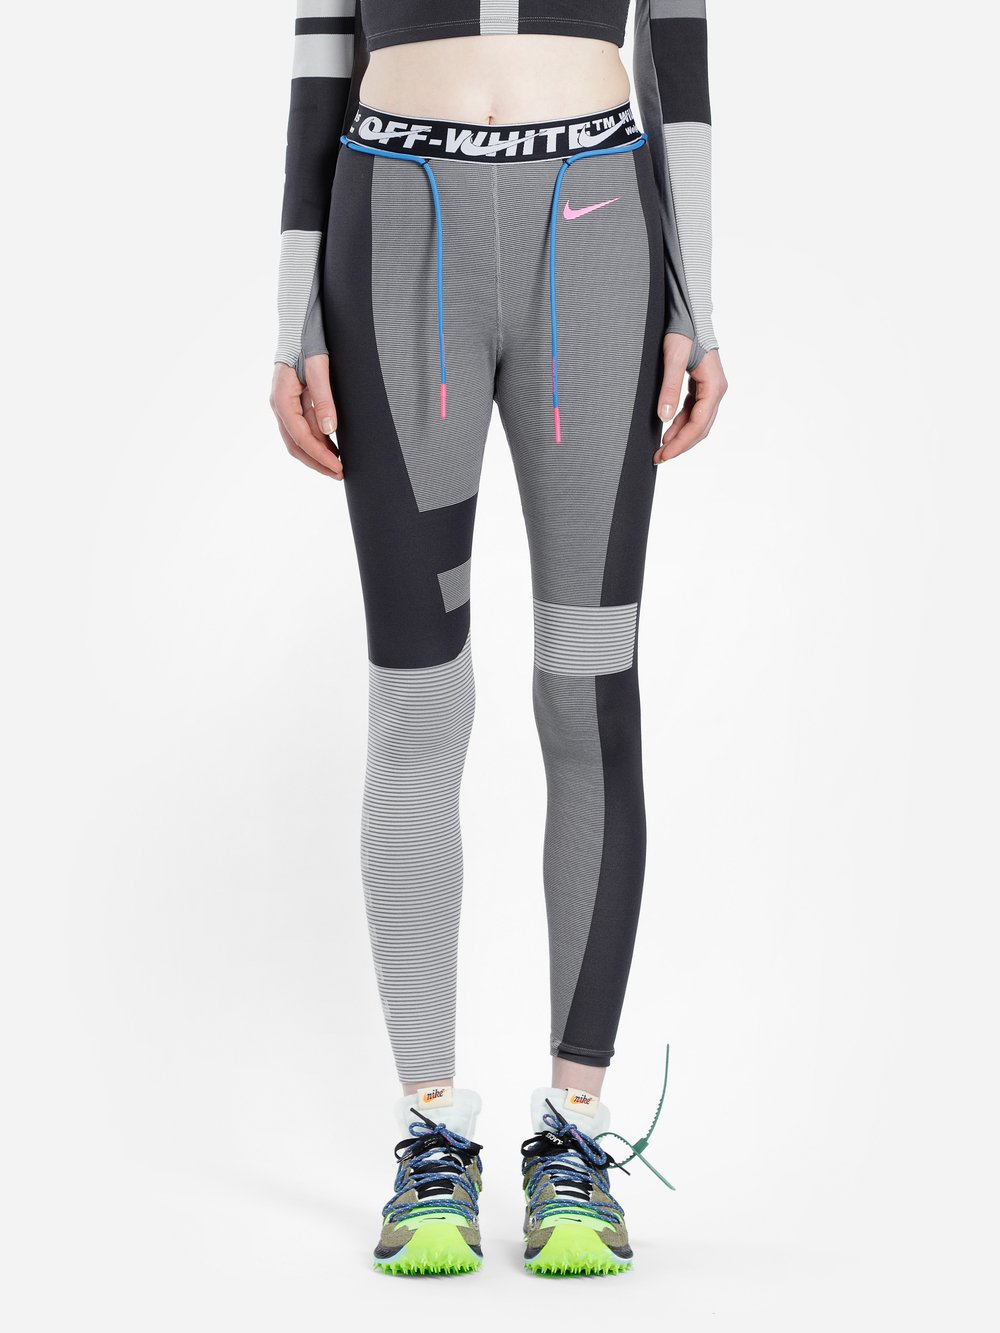 best cheap shades of official supplier Nike Leggings BV8043 010